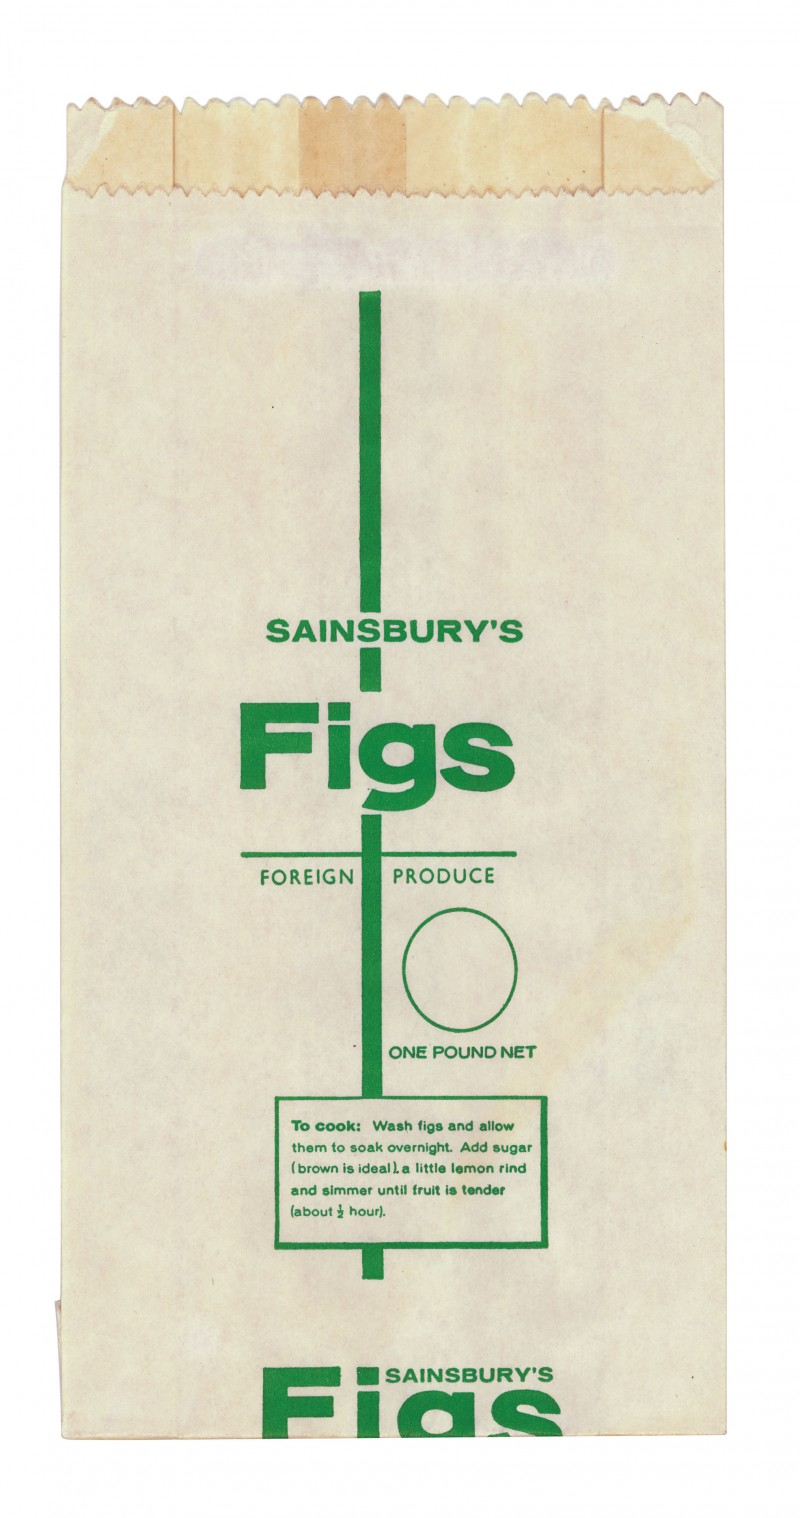 SA/PKC/PRO/1/14/2/2/142/1 - Sainsbury's Figs paper bag